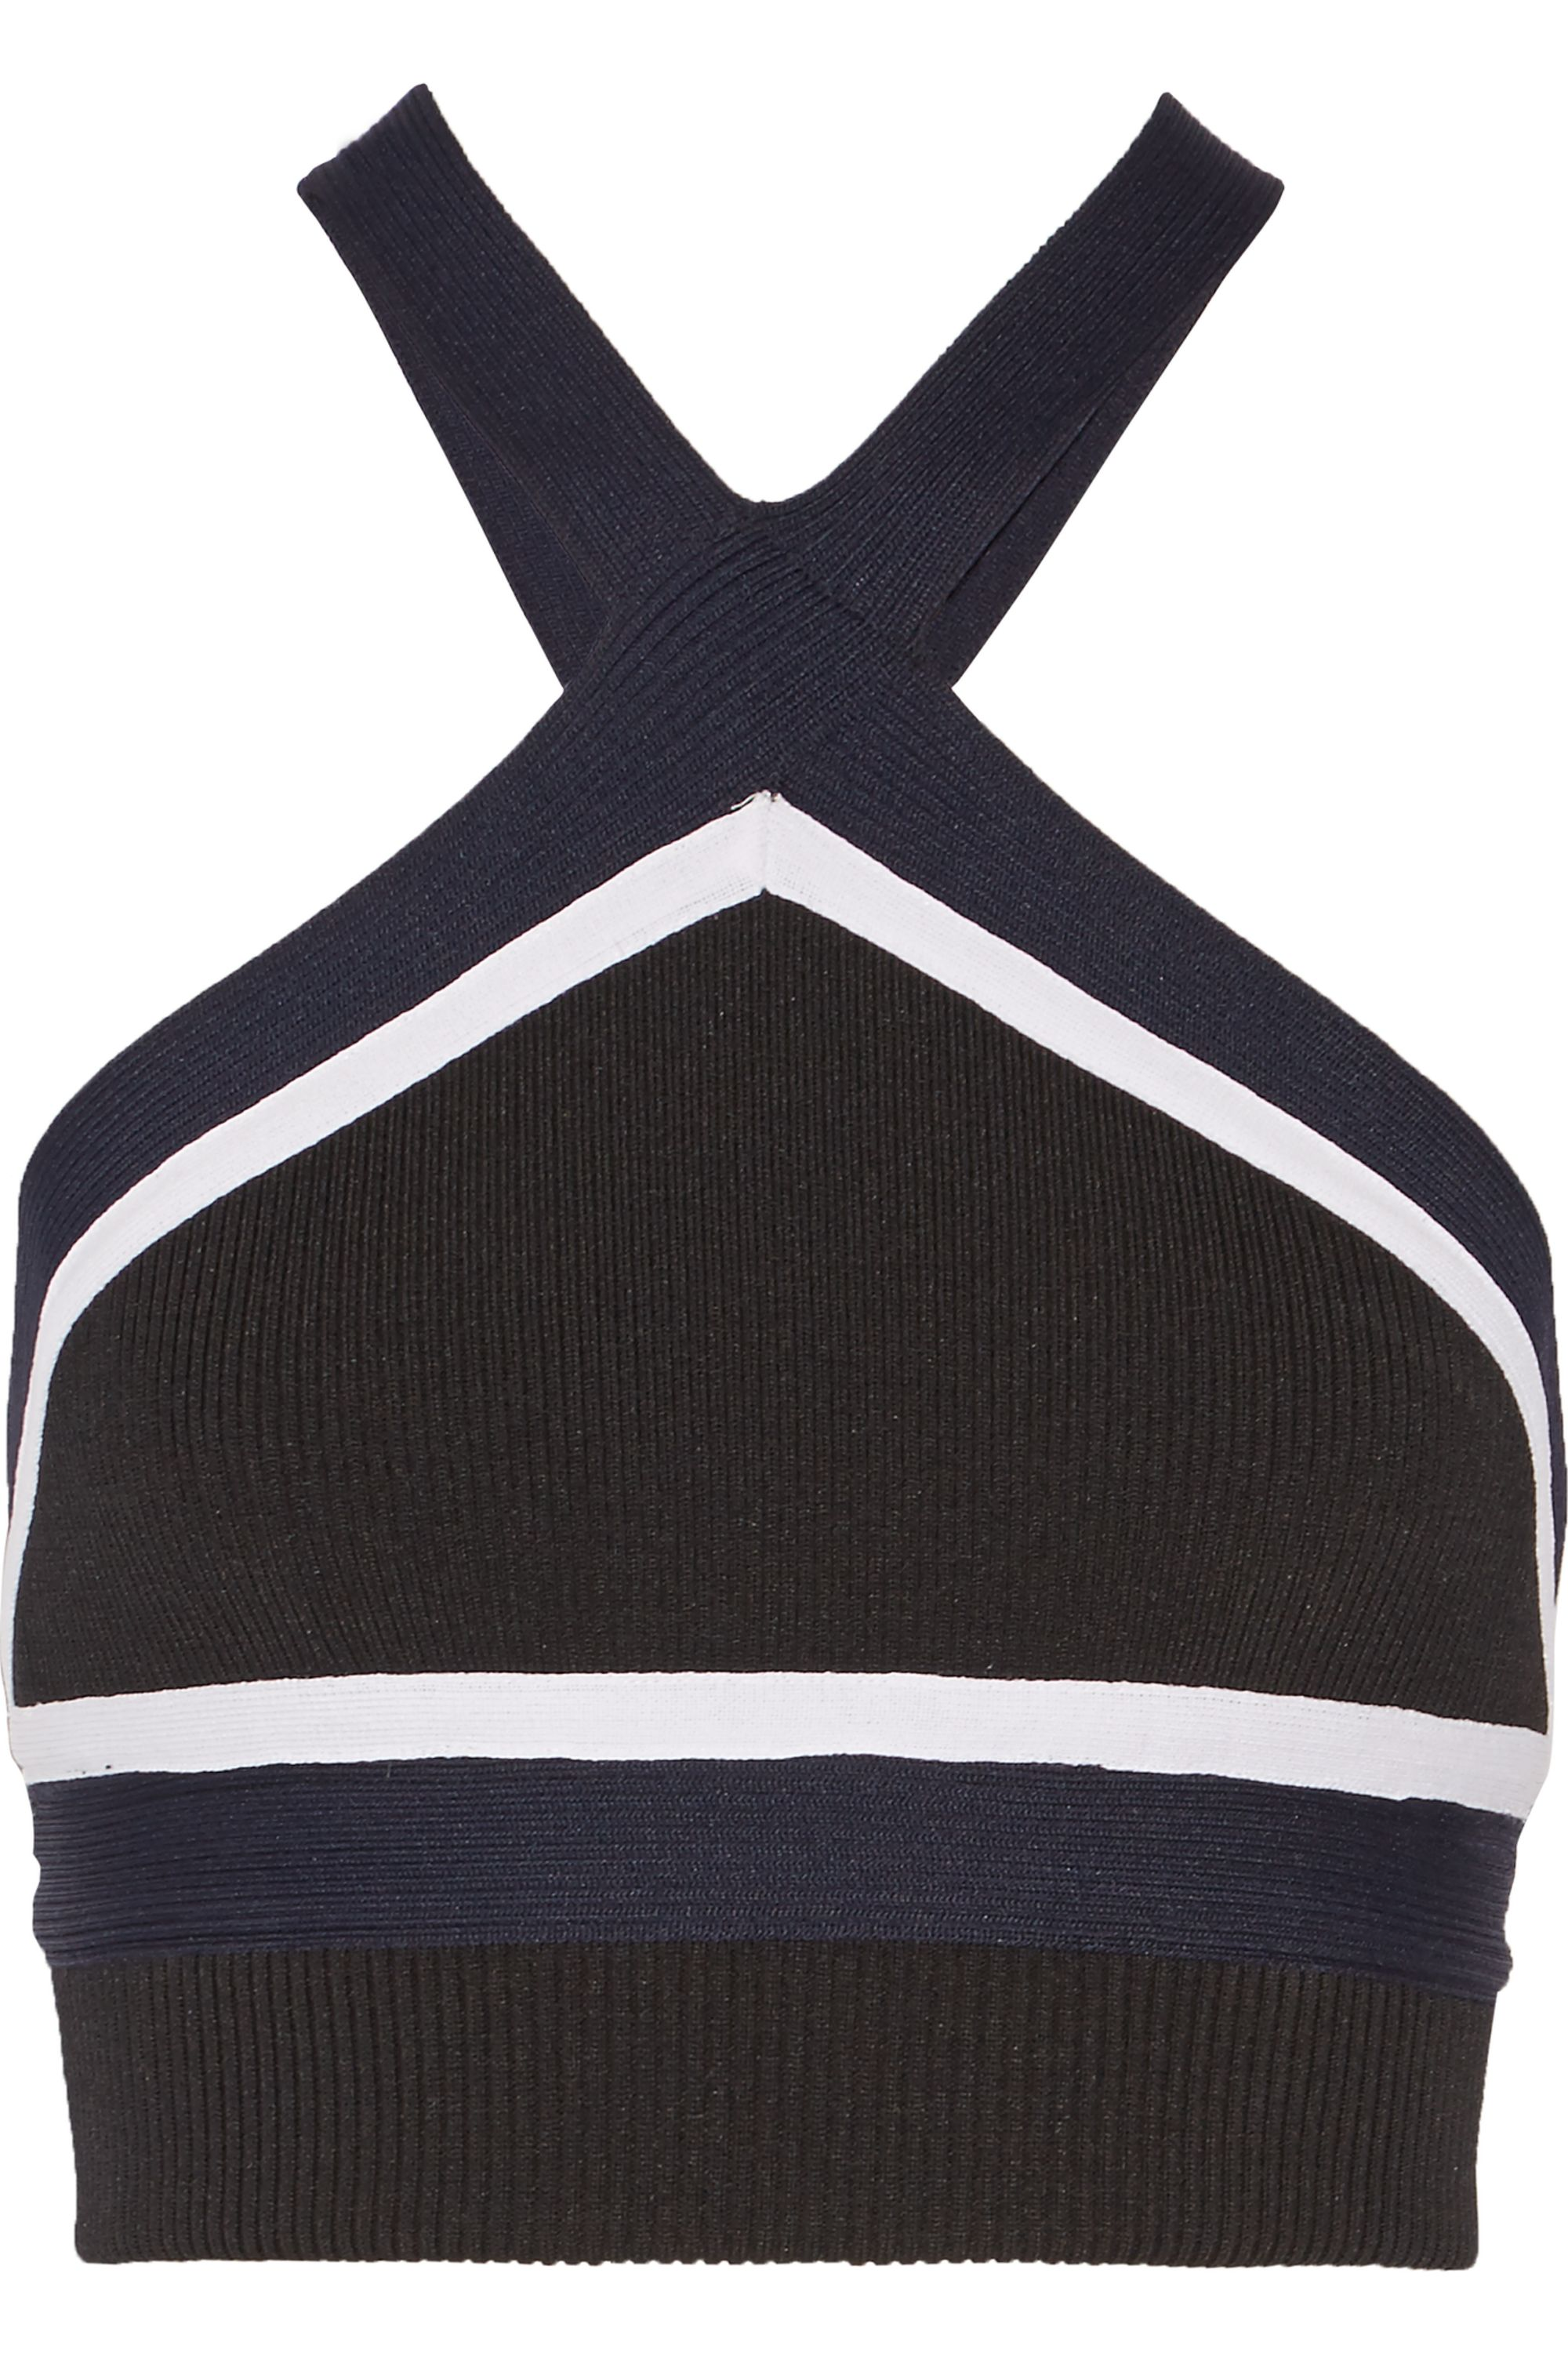 Jonathan Simkhai Cropped ribbed stretch-knit halterneck top